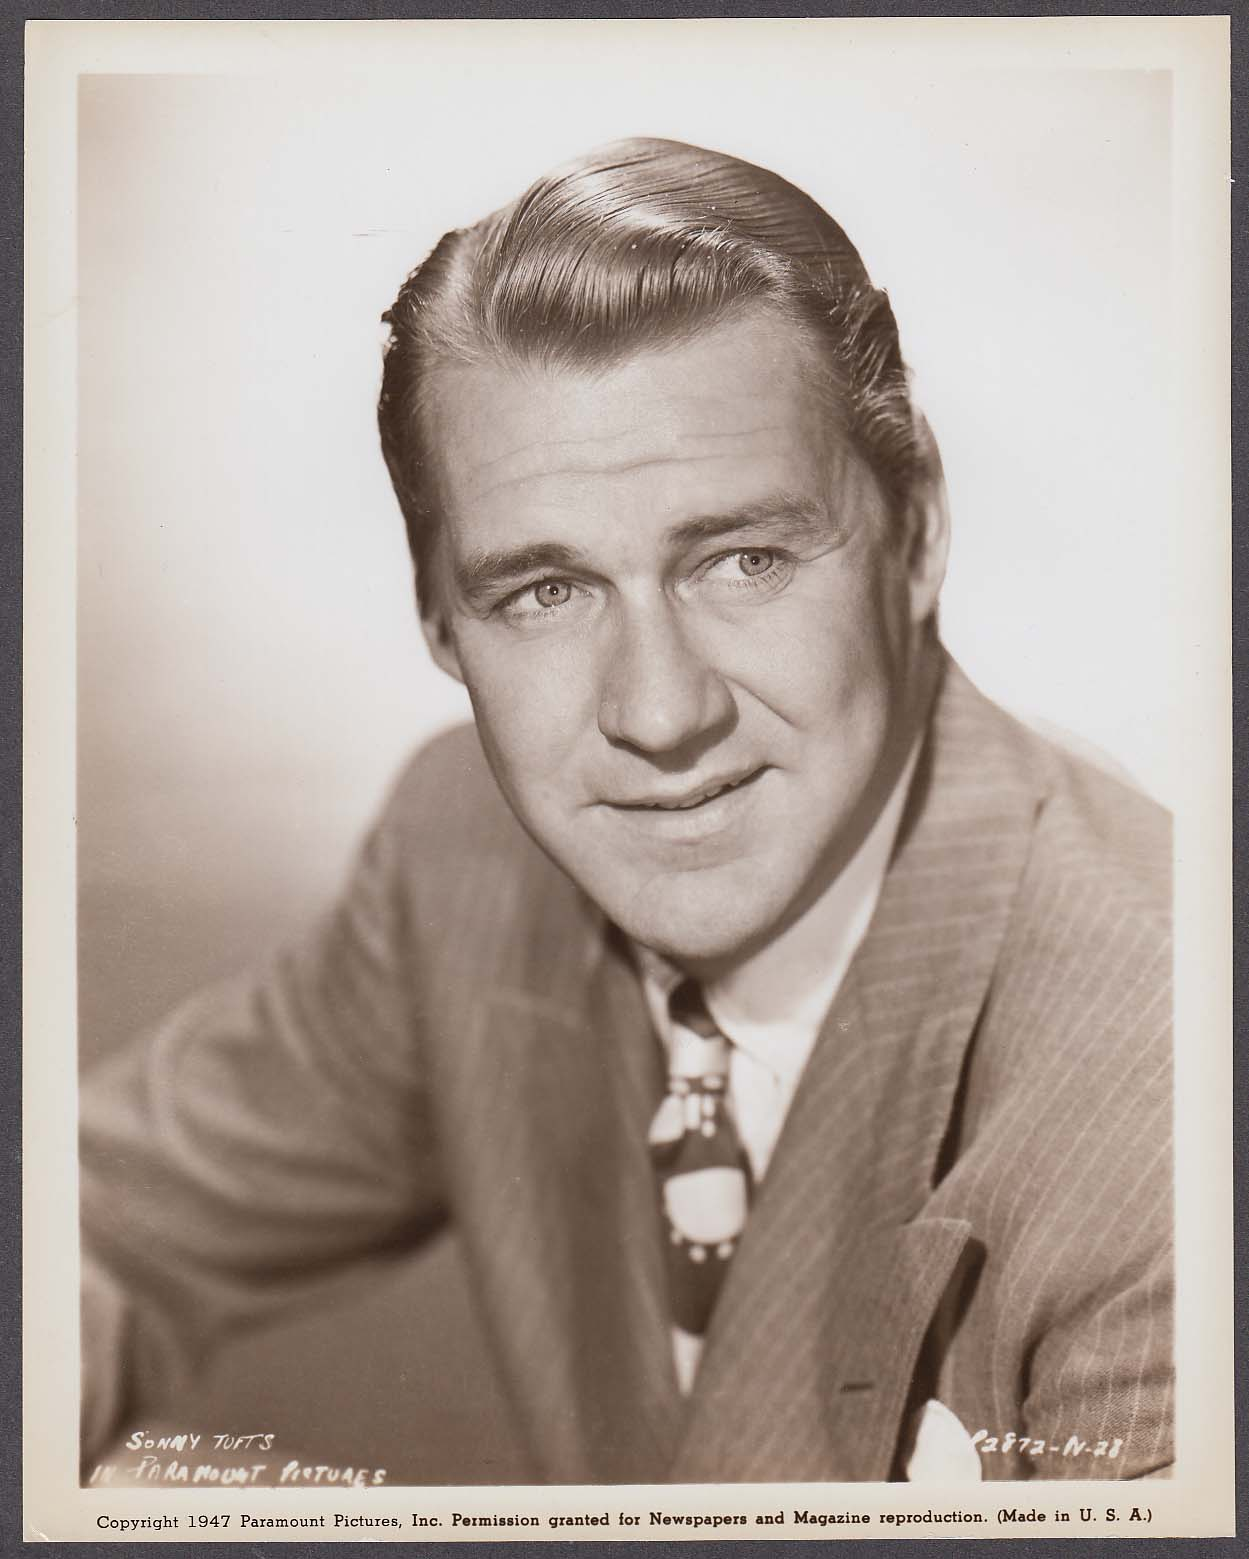 Sonny Tufts Paramount Pictures headshot 8x10 photo 1947